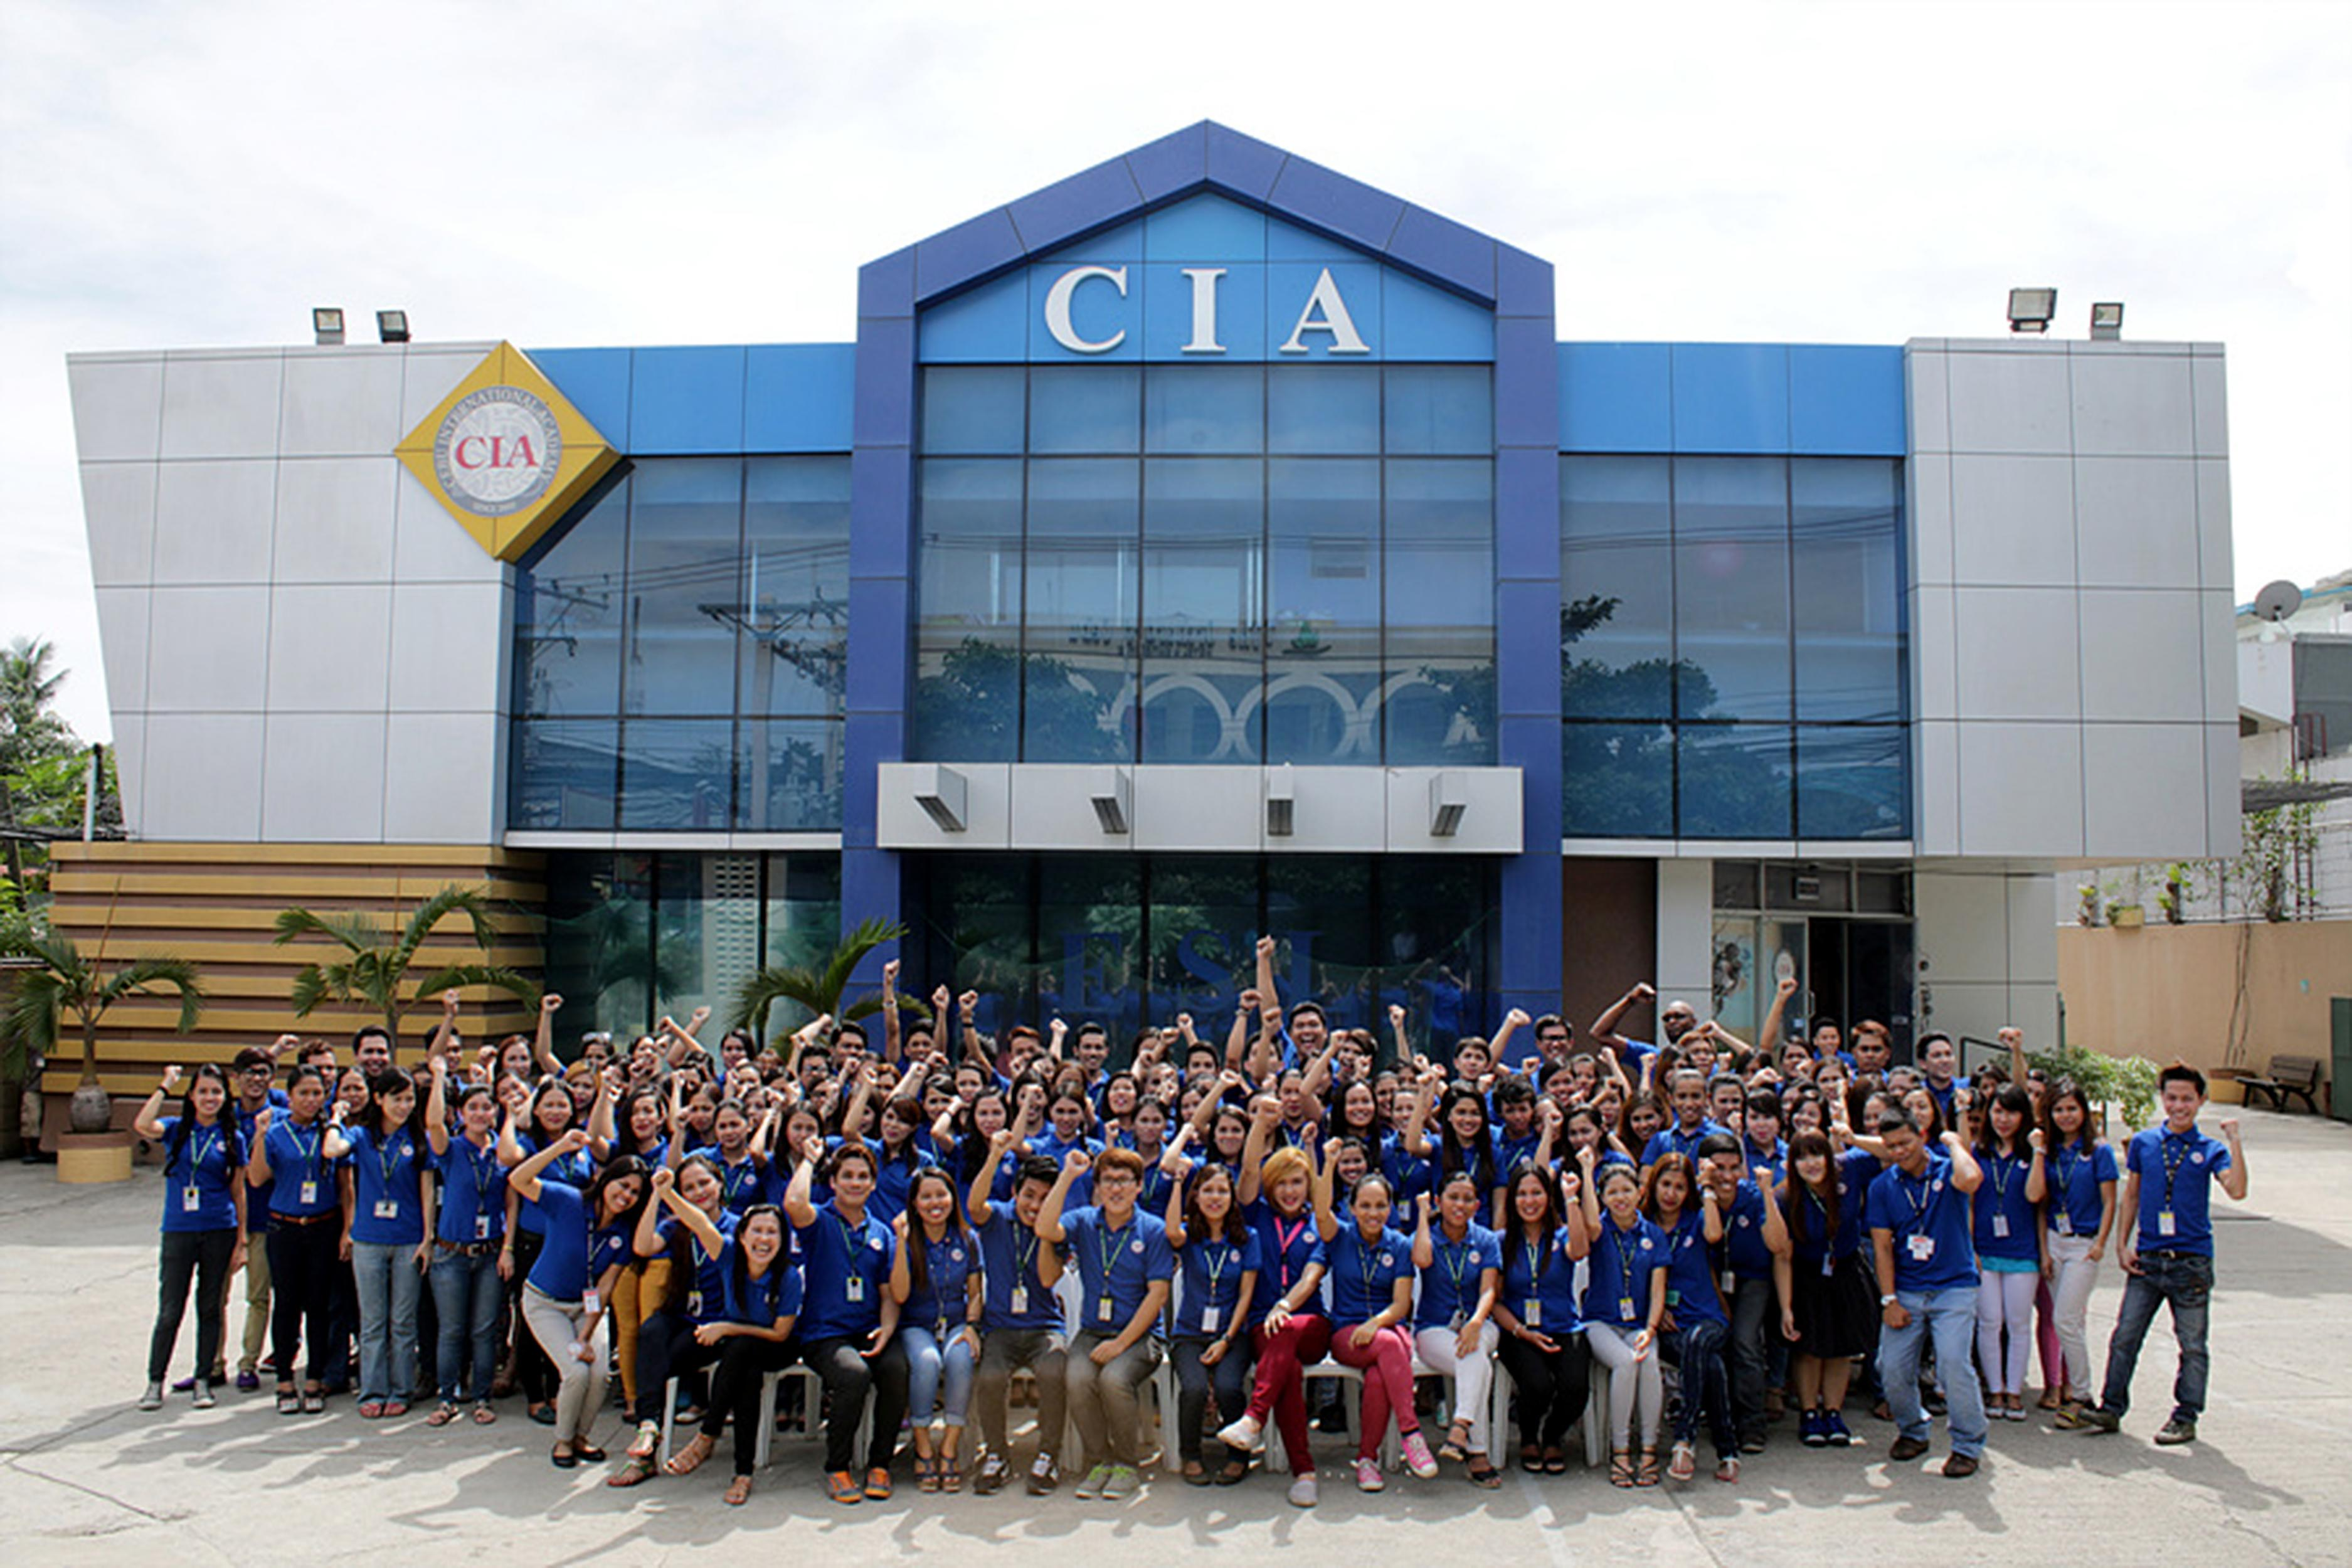 CIA Building with all the teachers